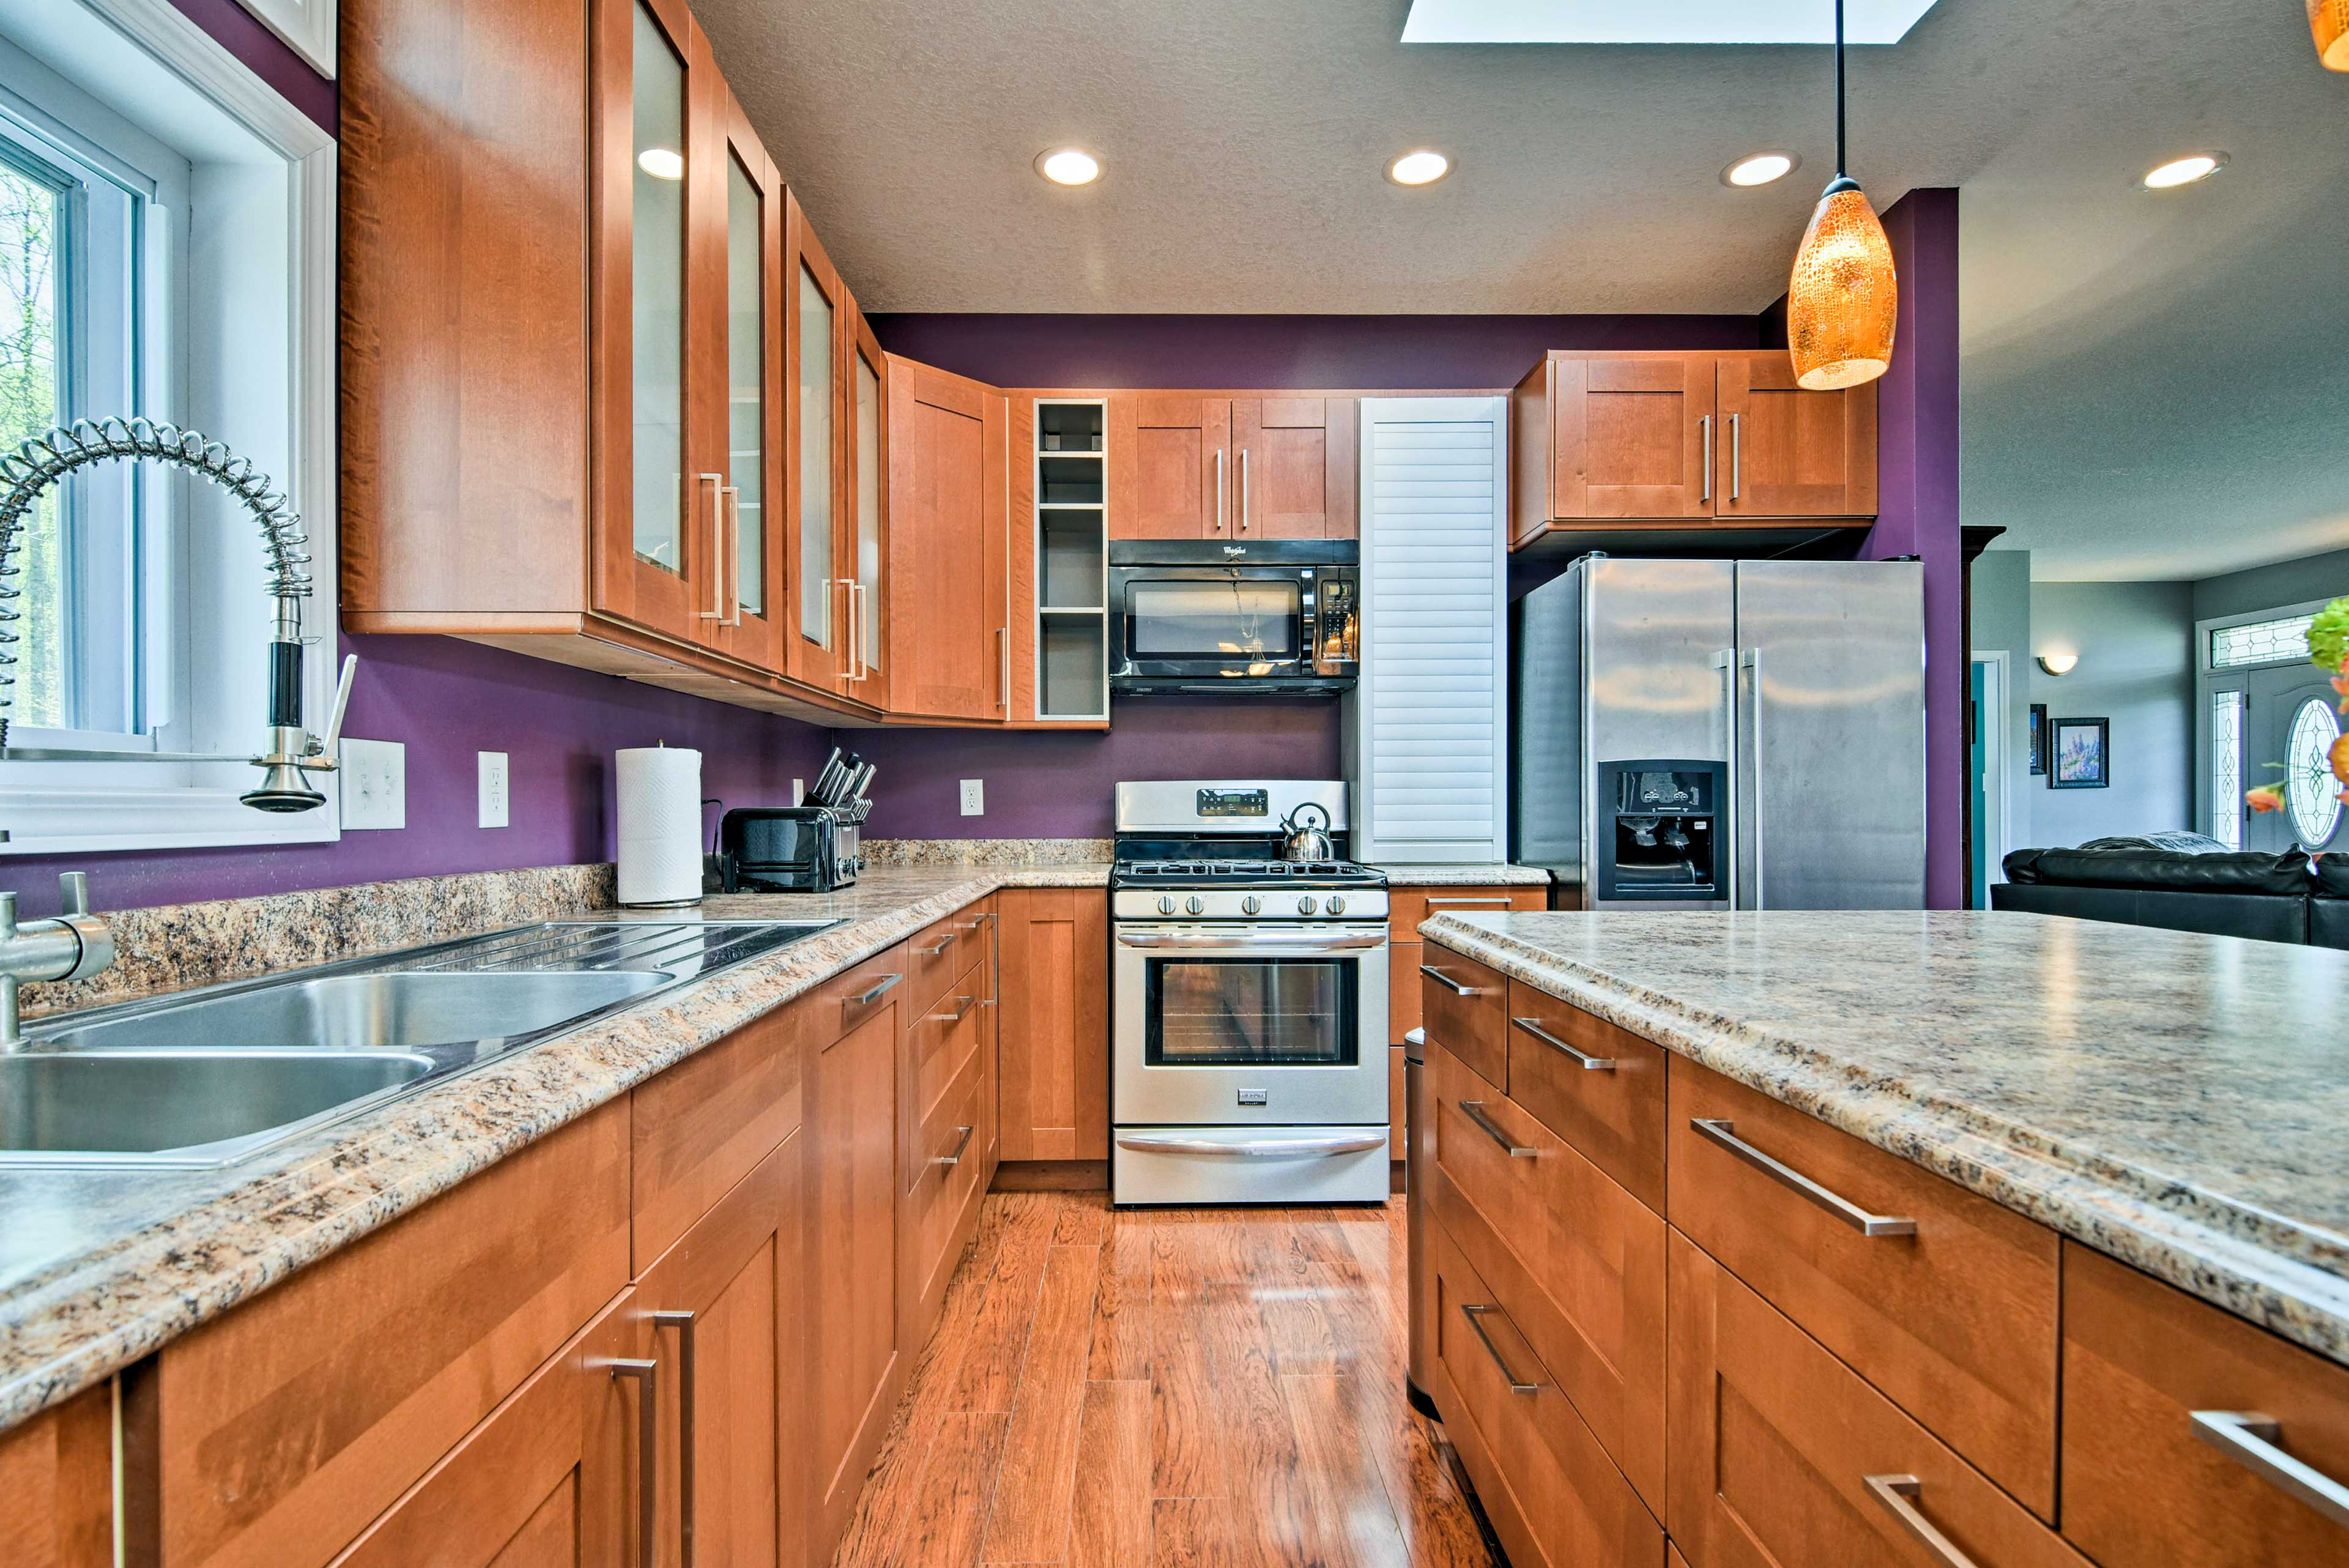 Prepare homemade meals with ease using the stainless steel appliances.